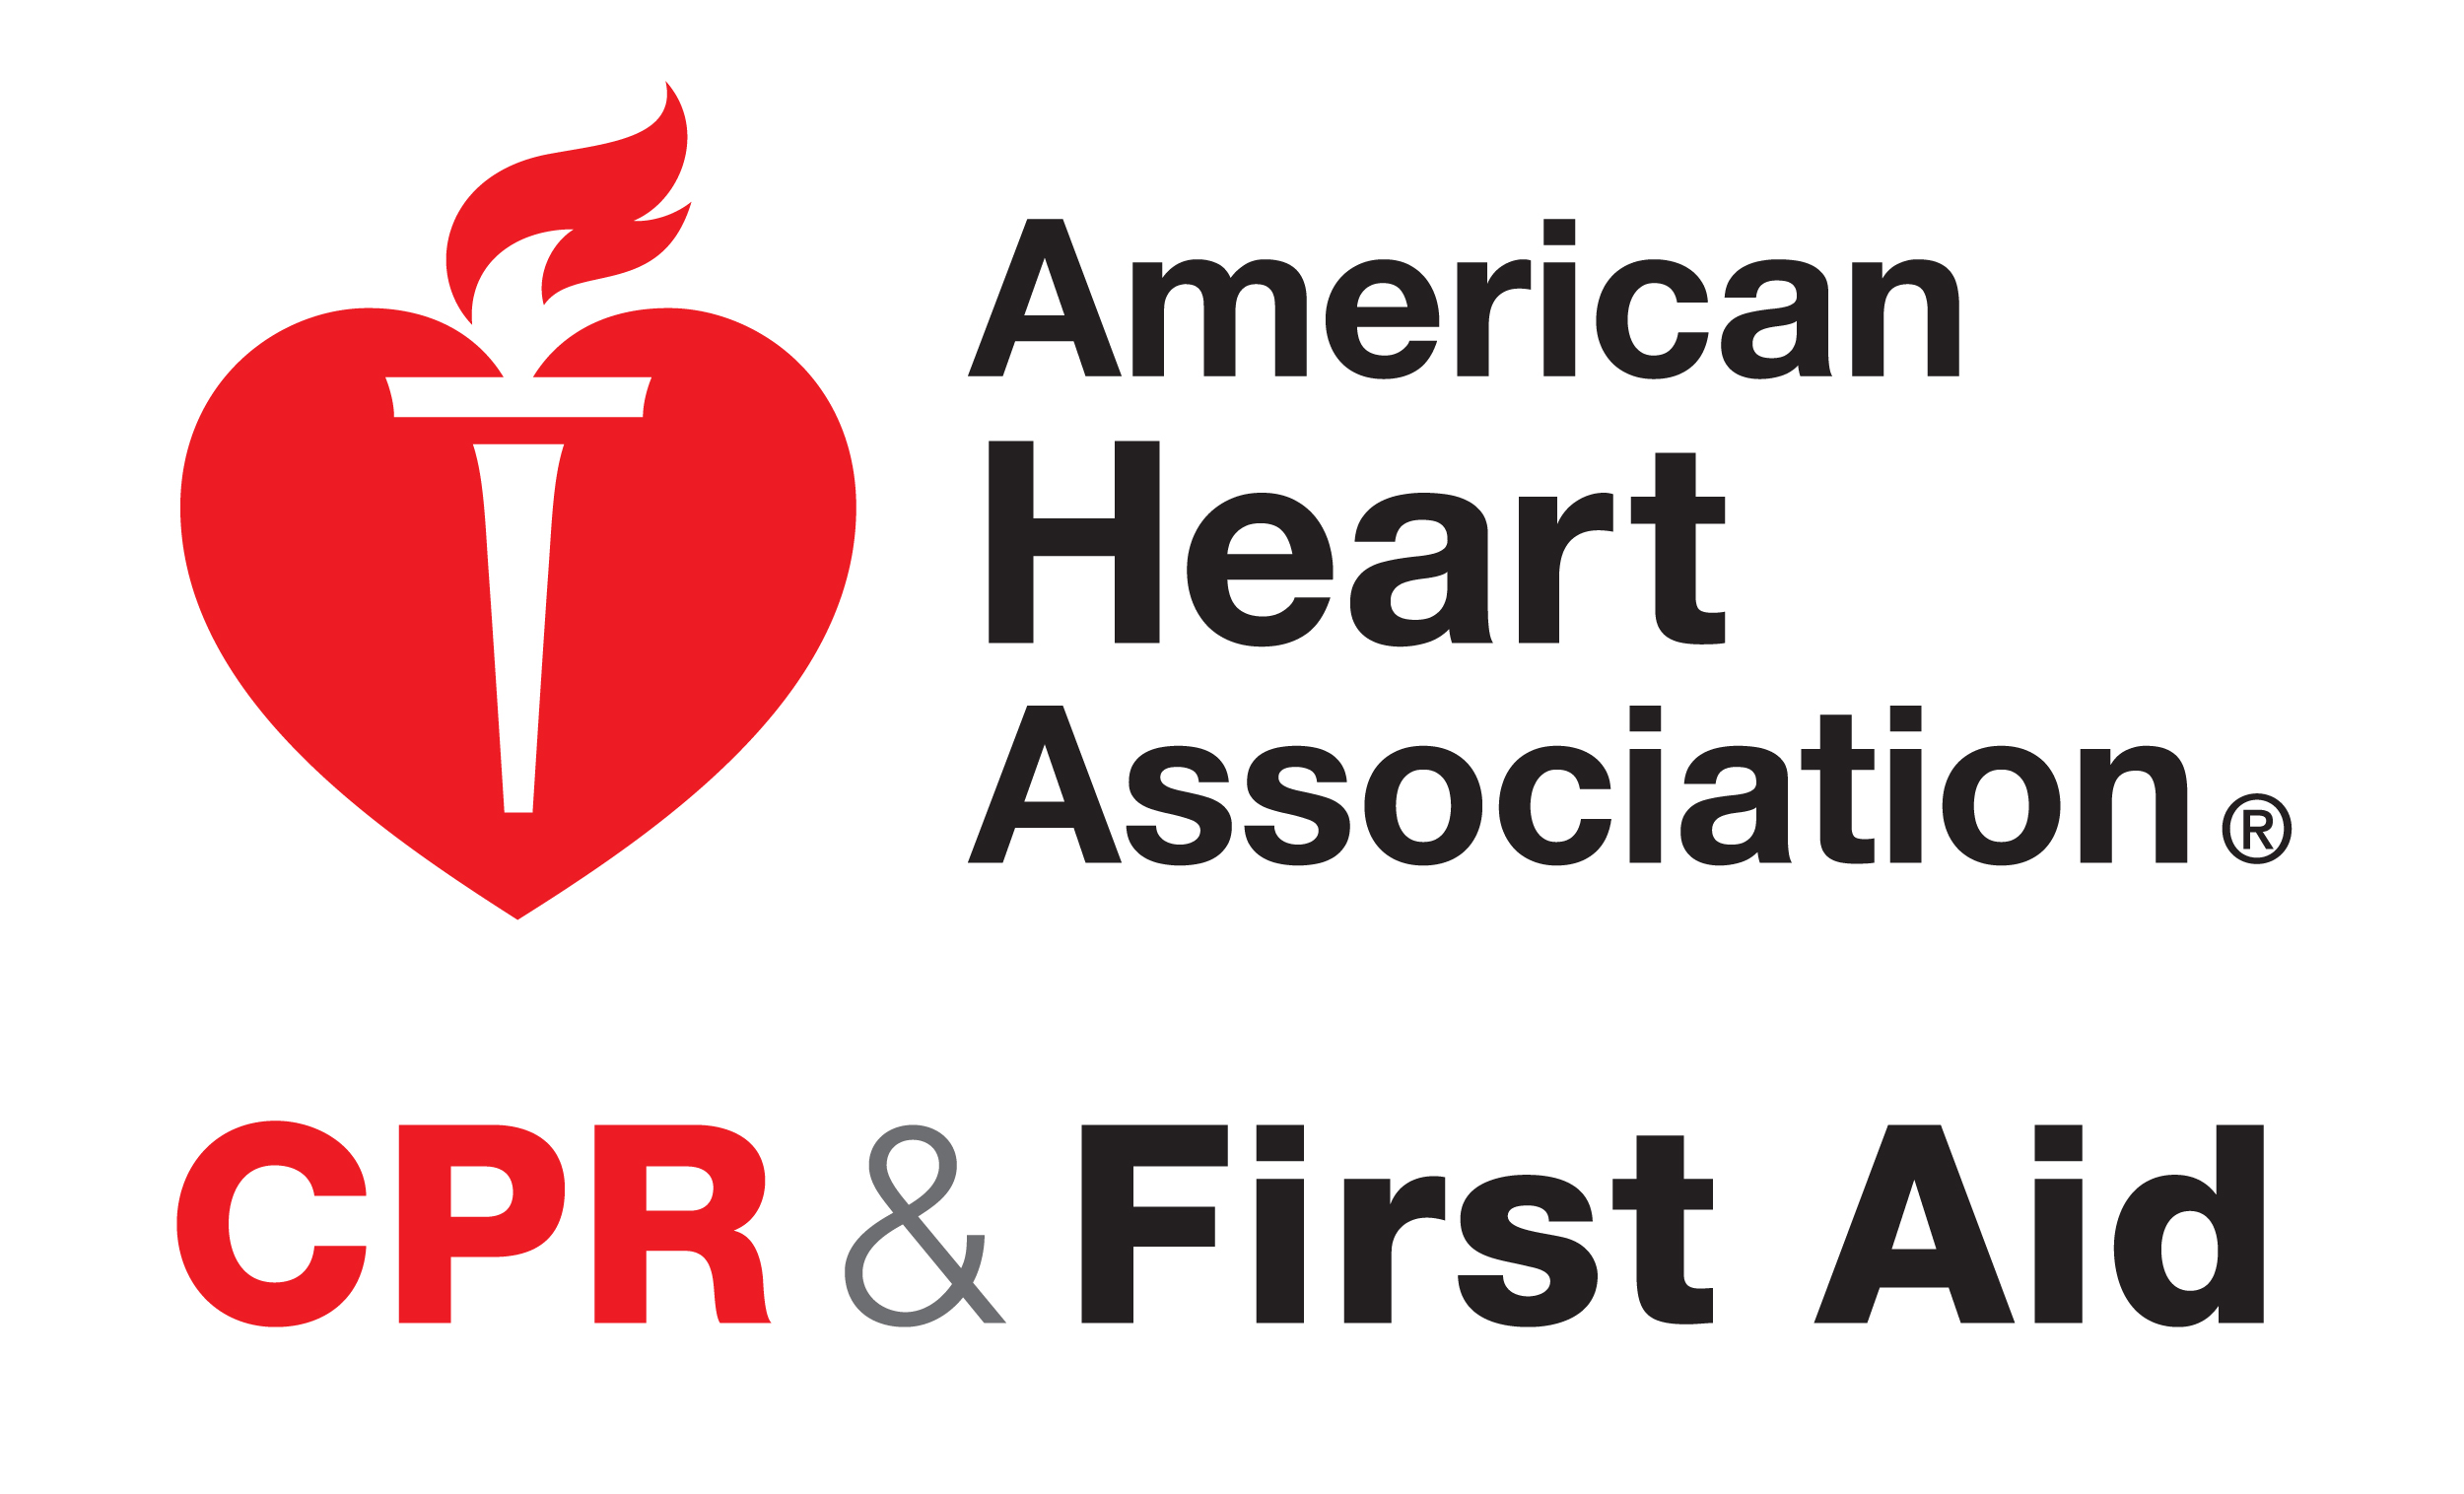 Tina Cotterill, Certified in CPR & First Aid by the American Heart Association